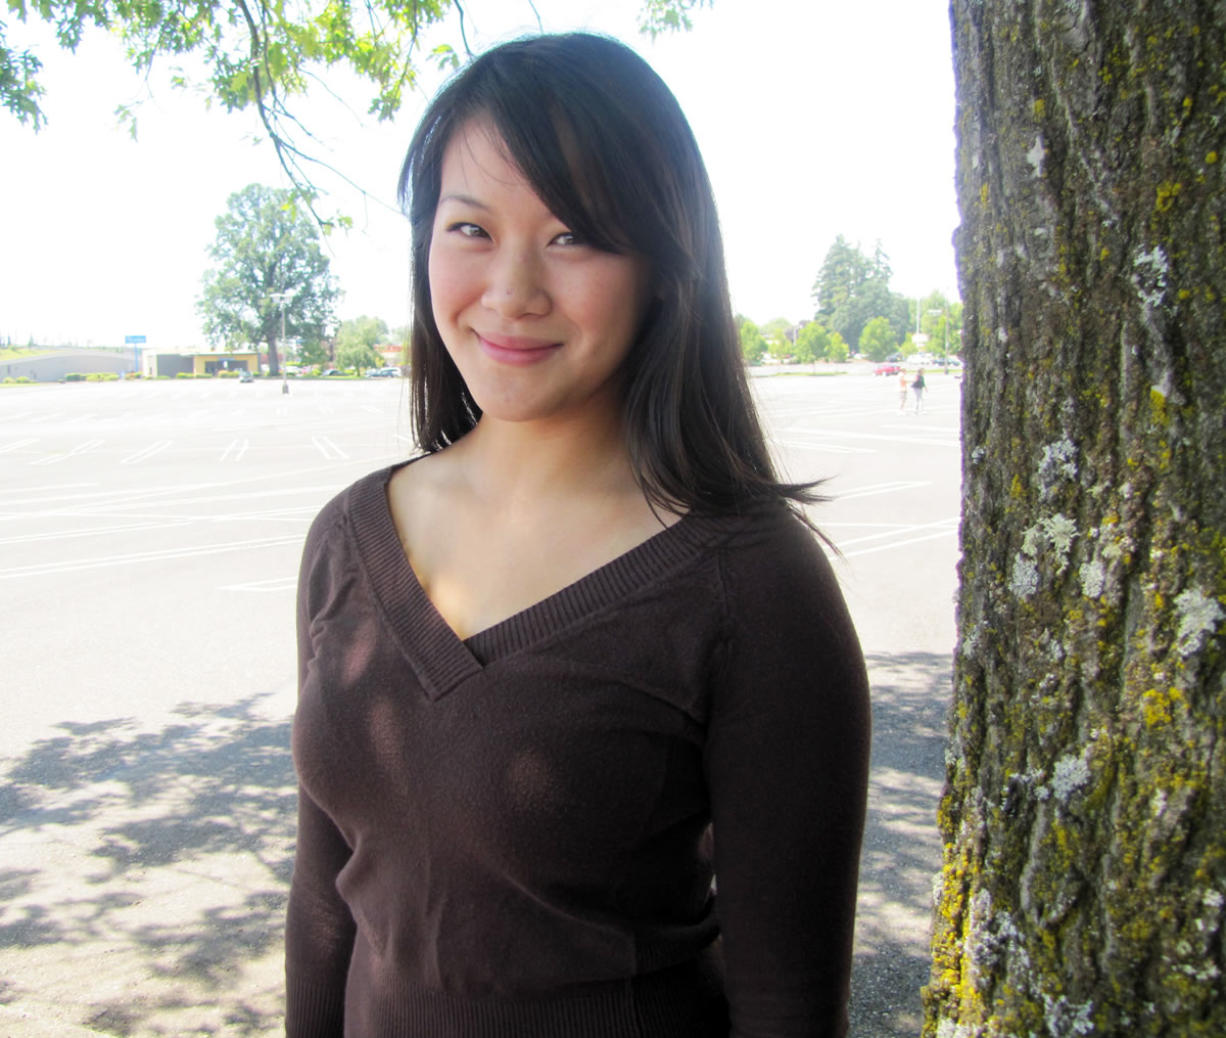 Priscilla Dang fought off two teen boys who accosted her while she was jogging along the Padden Parkway path on June 15.